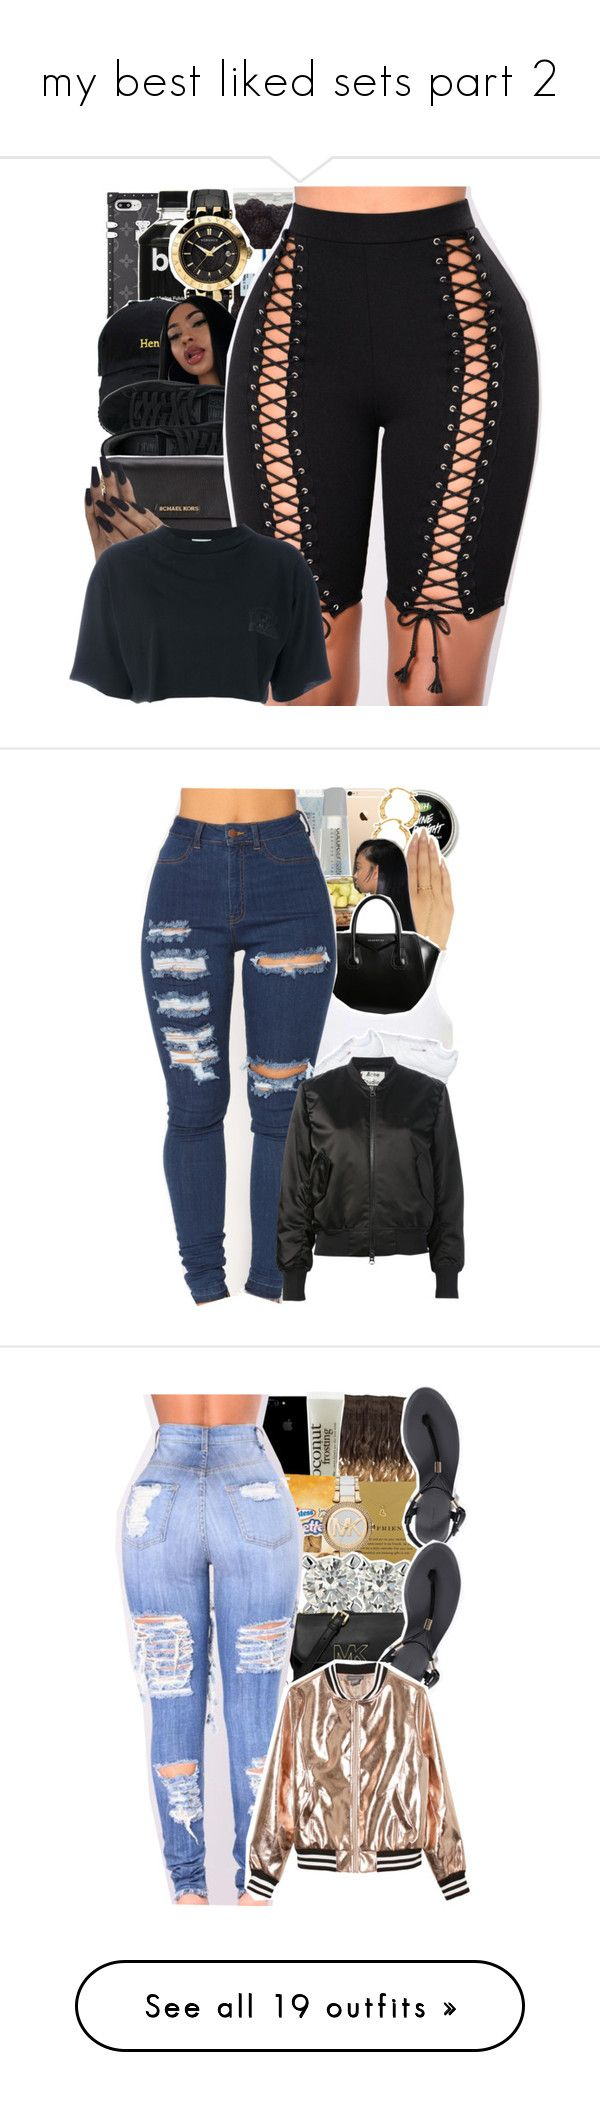 """my best liked sets part 2"" by danny-baby ❤ liked on Polyvore featuring Versace, Puma, Michael Kors, Aries, Maybelline, Wet Seal, Givenchy, Topshop, Acne Studios and philosophy"